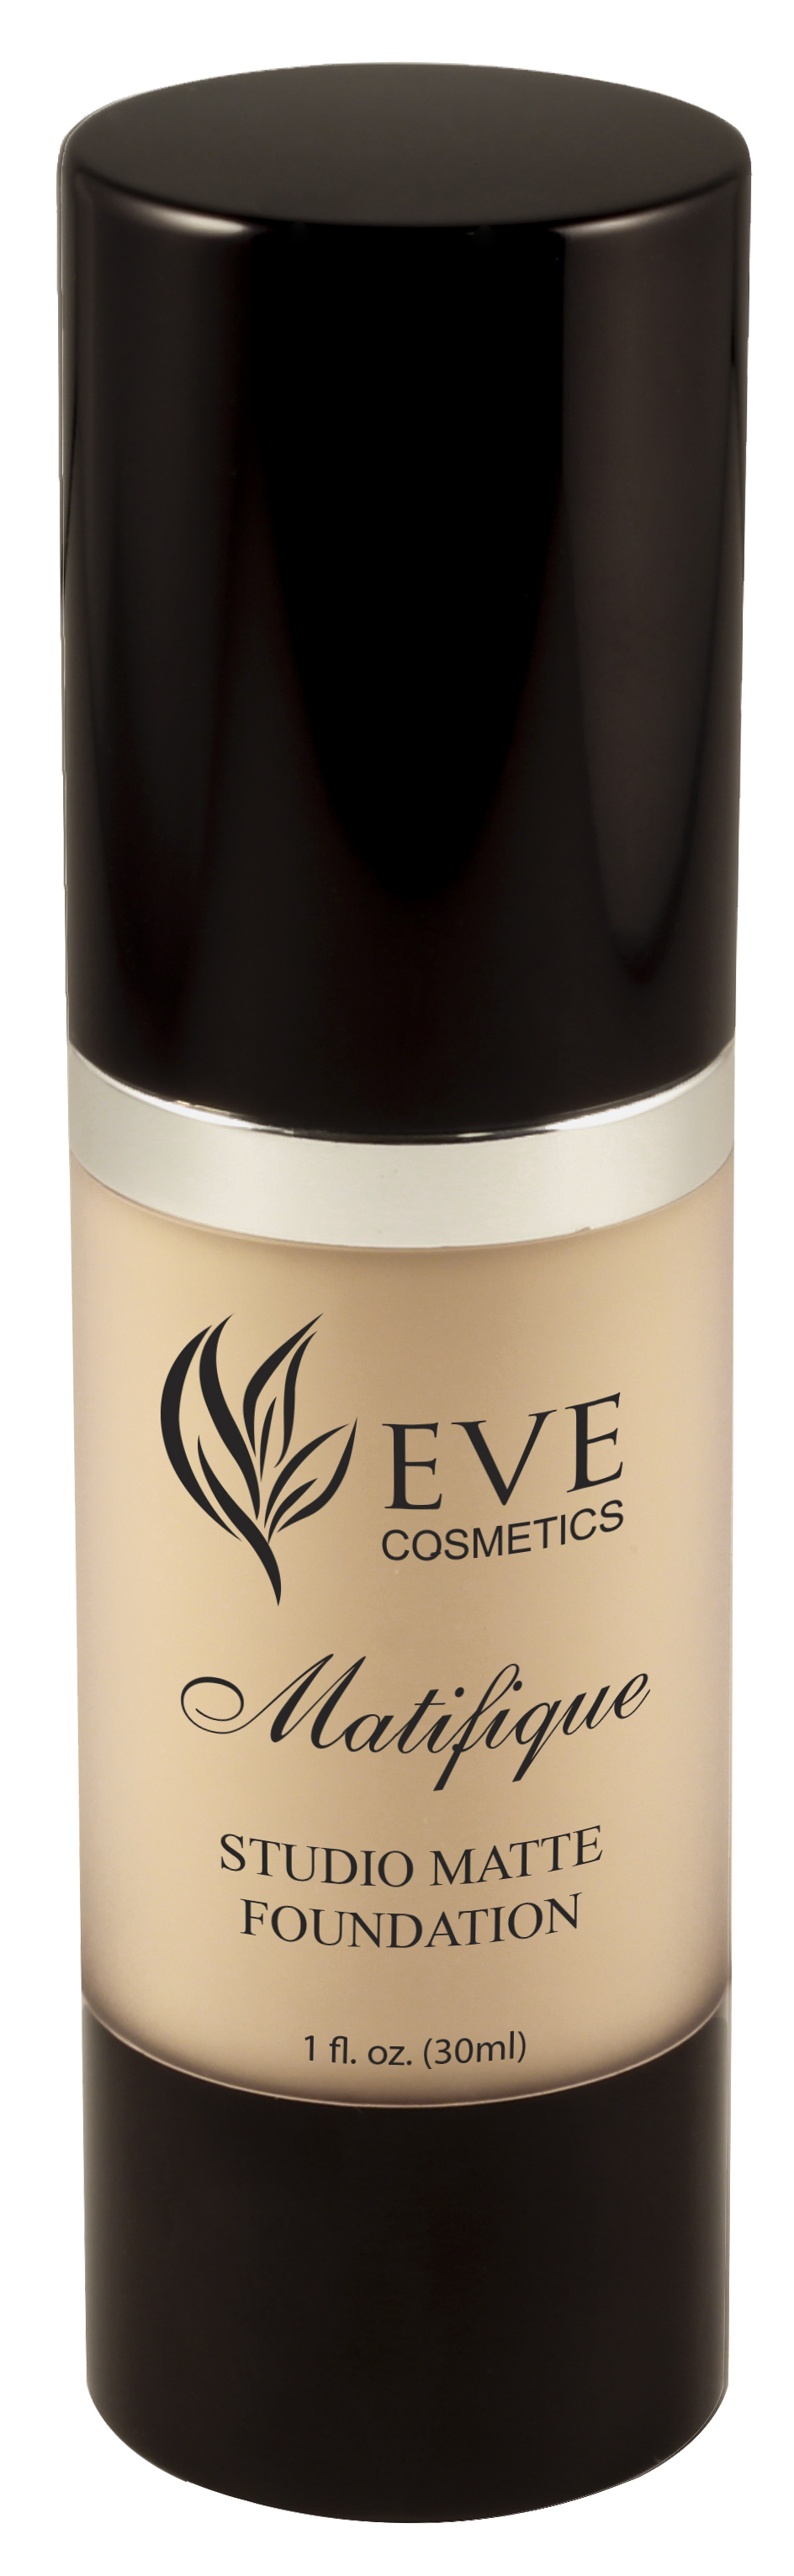 copyright eve cosmetics matifique stuiod matte foundation